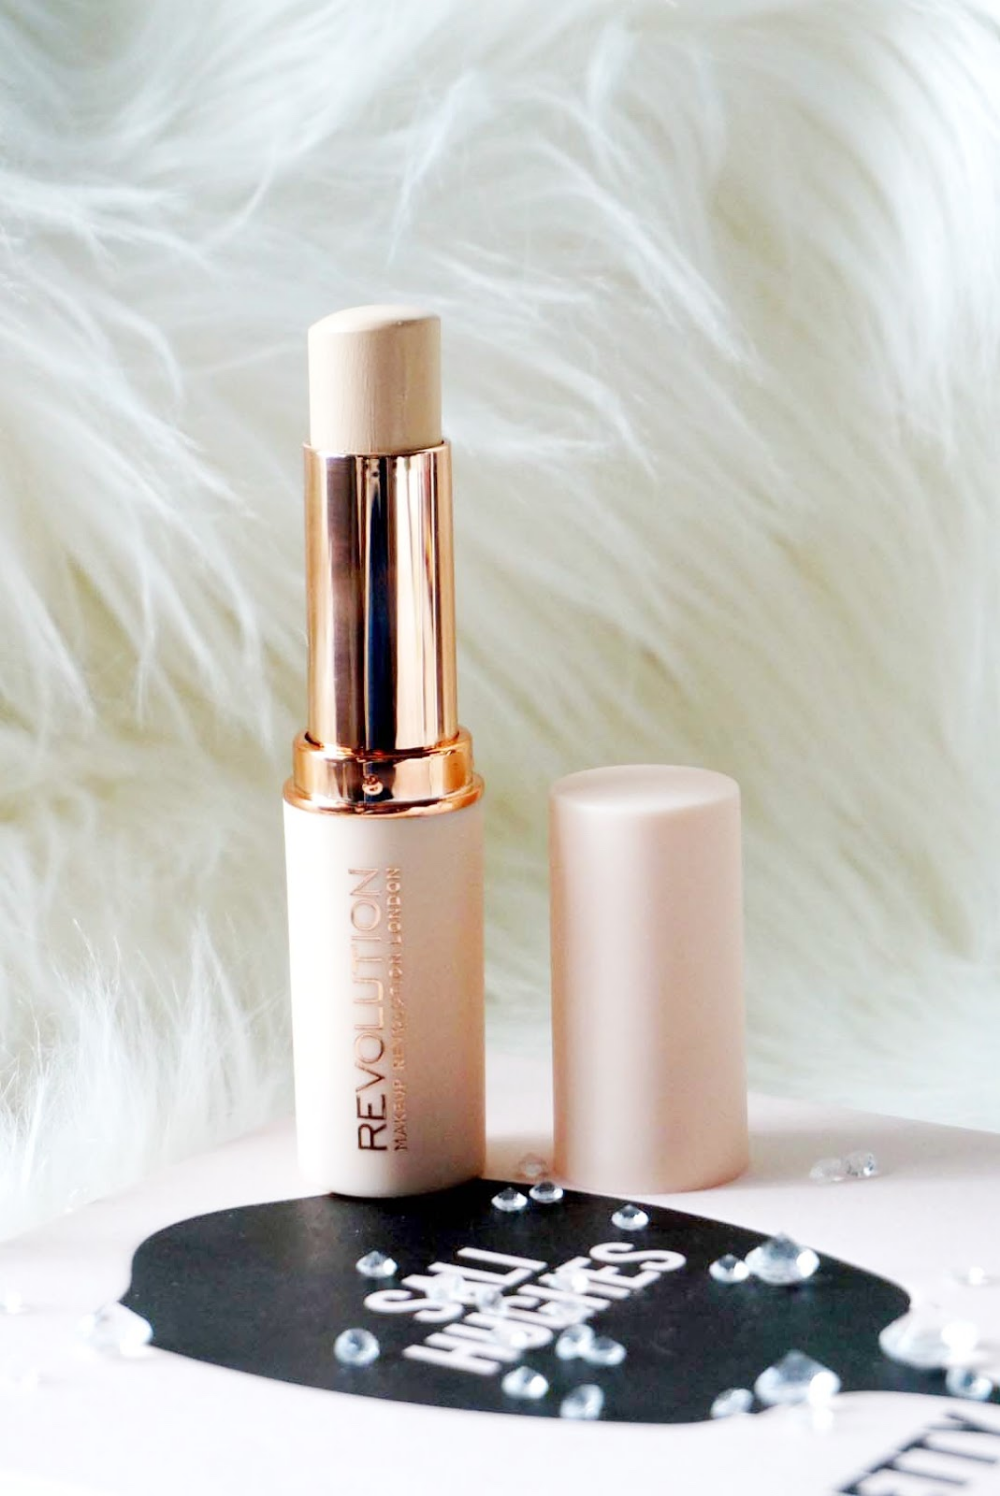 MAKEUP REVOLUTION FAST BASE STICK FOUNDATION REVIEW (With